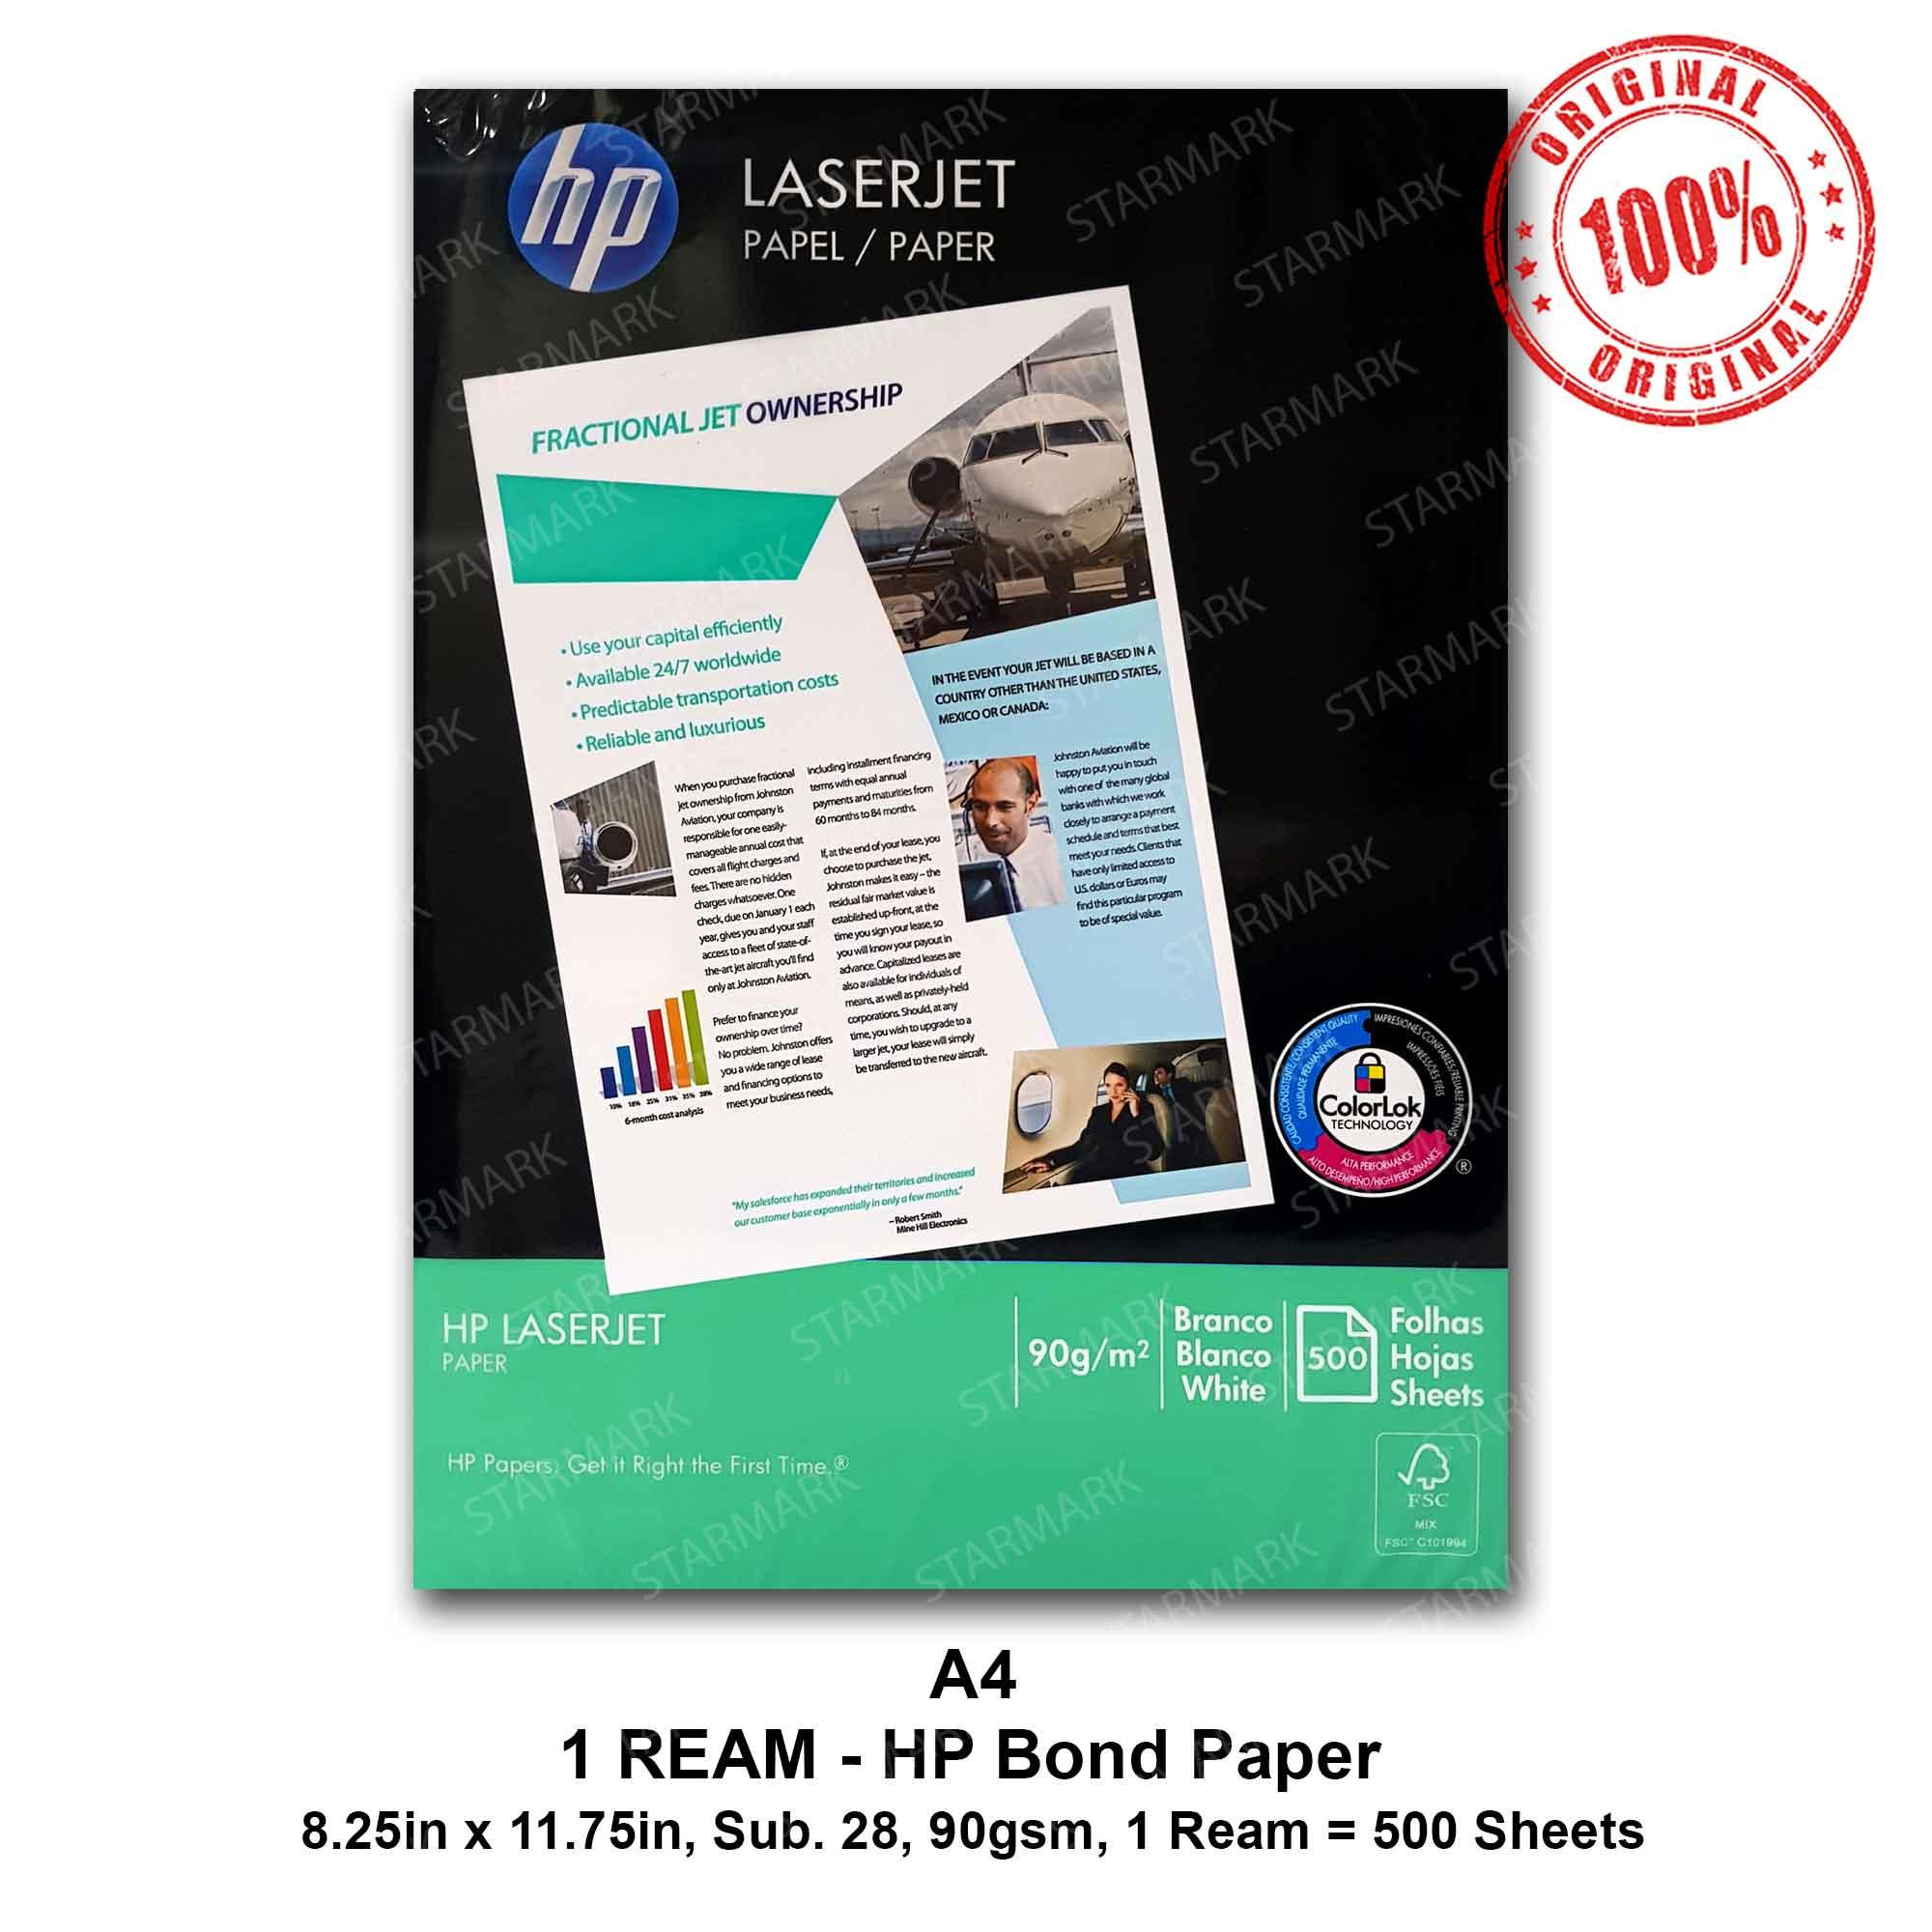 HP Bond Paper A4 Copy Paper Papers 90gsm Substance 28 - A4 Size  8 25inx11 75in, 8 25 inches x 11 75 inches - Set of 1 Ream - Genuine and  Original